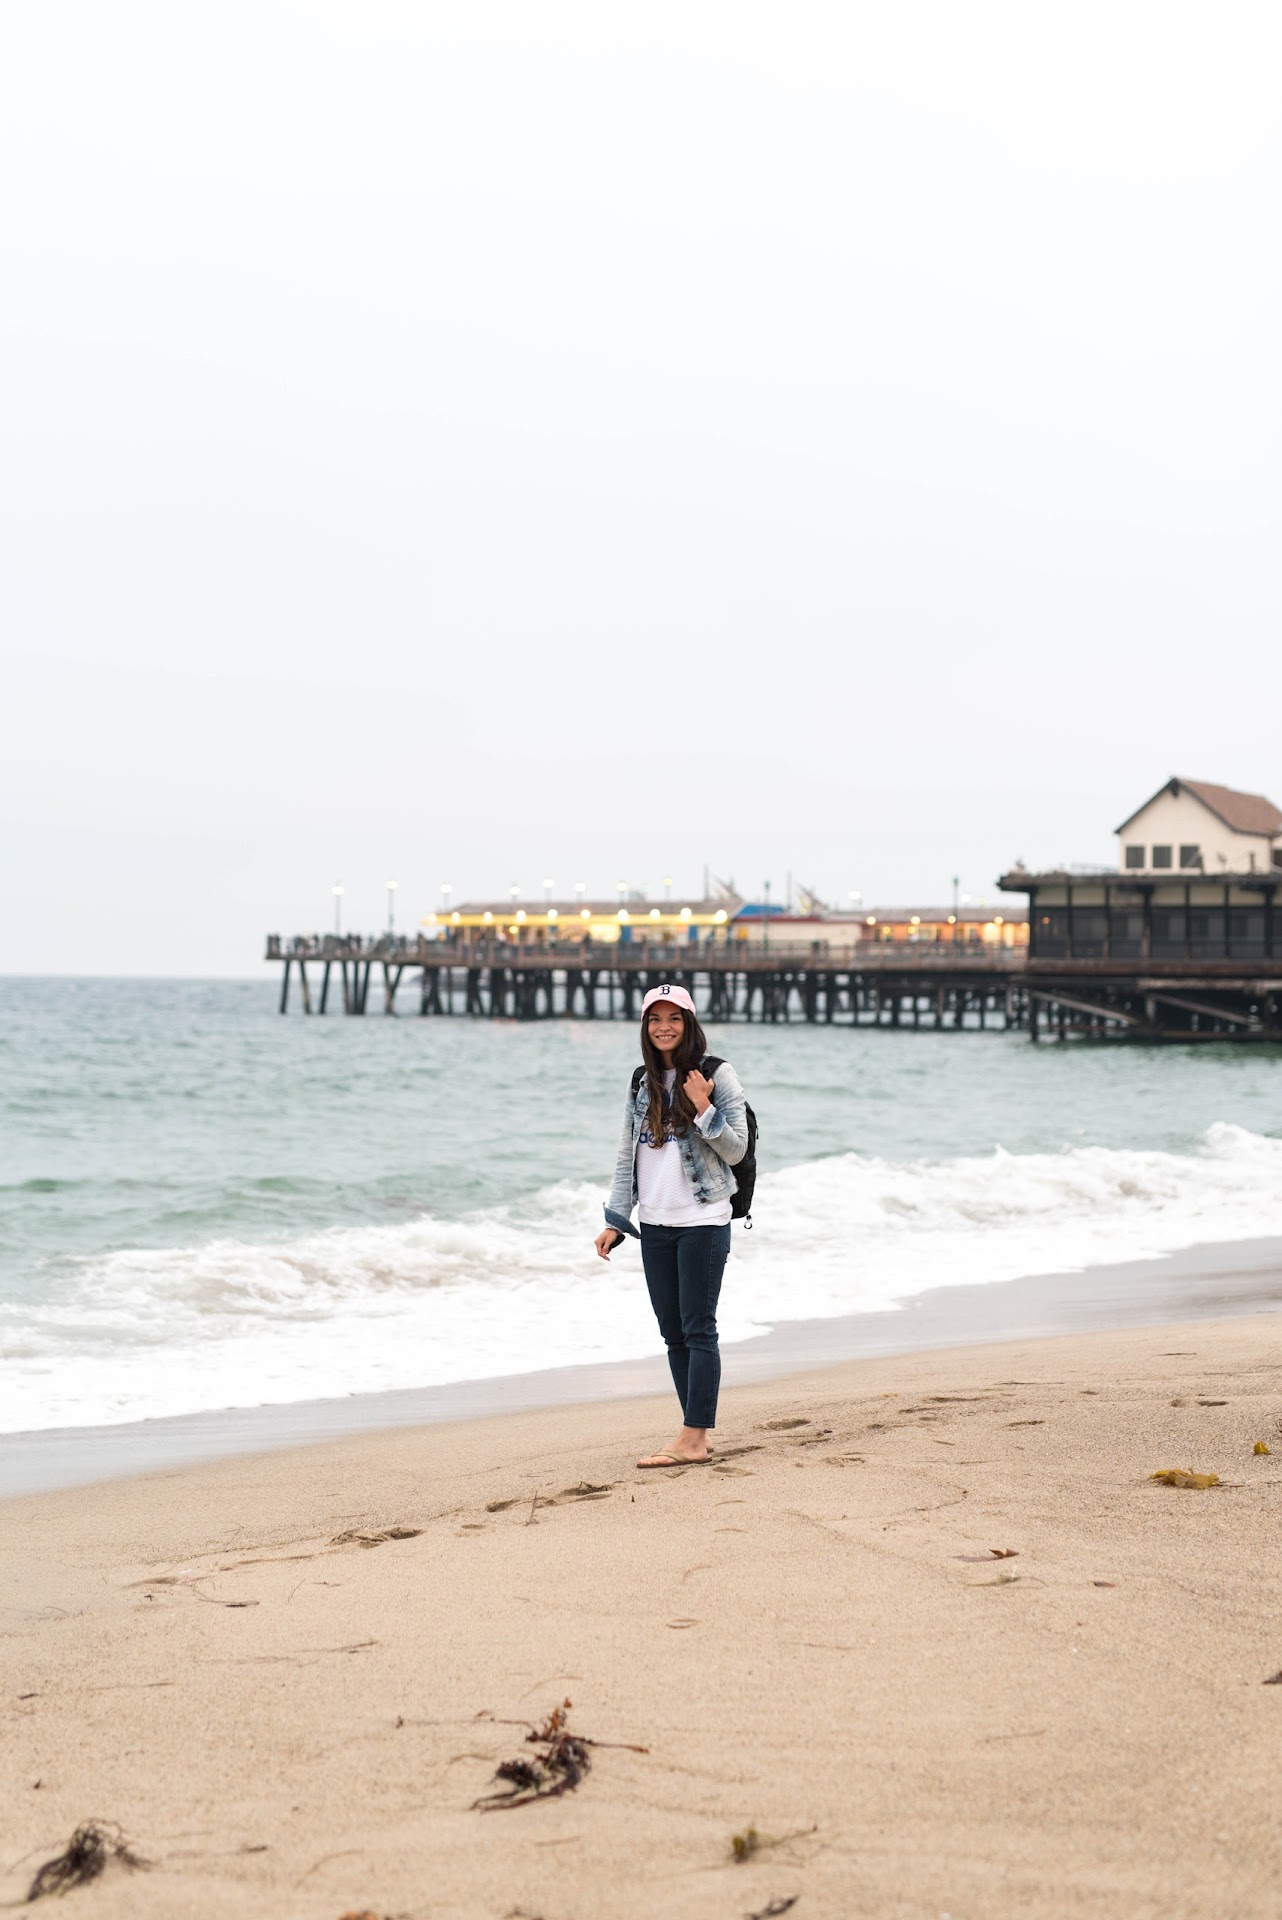 things to do in torrance, socal beaches, best beaches in california, travel blogger, california, utah blogger, lds